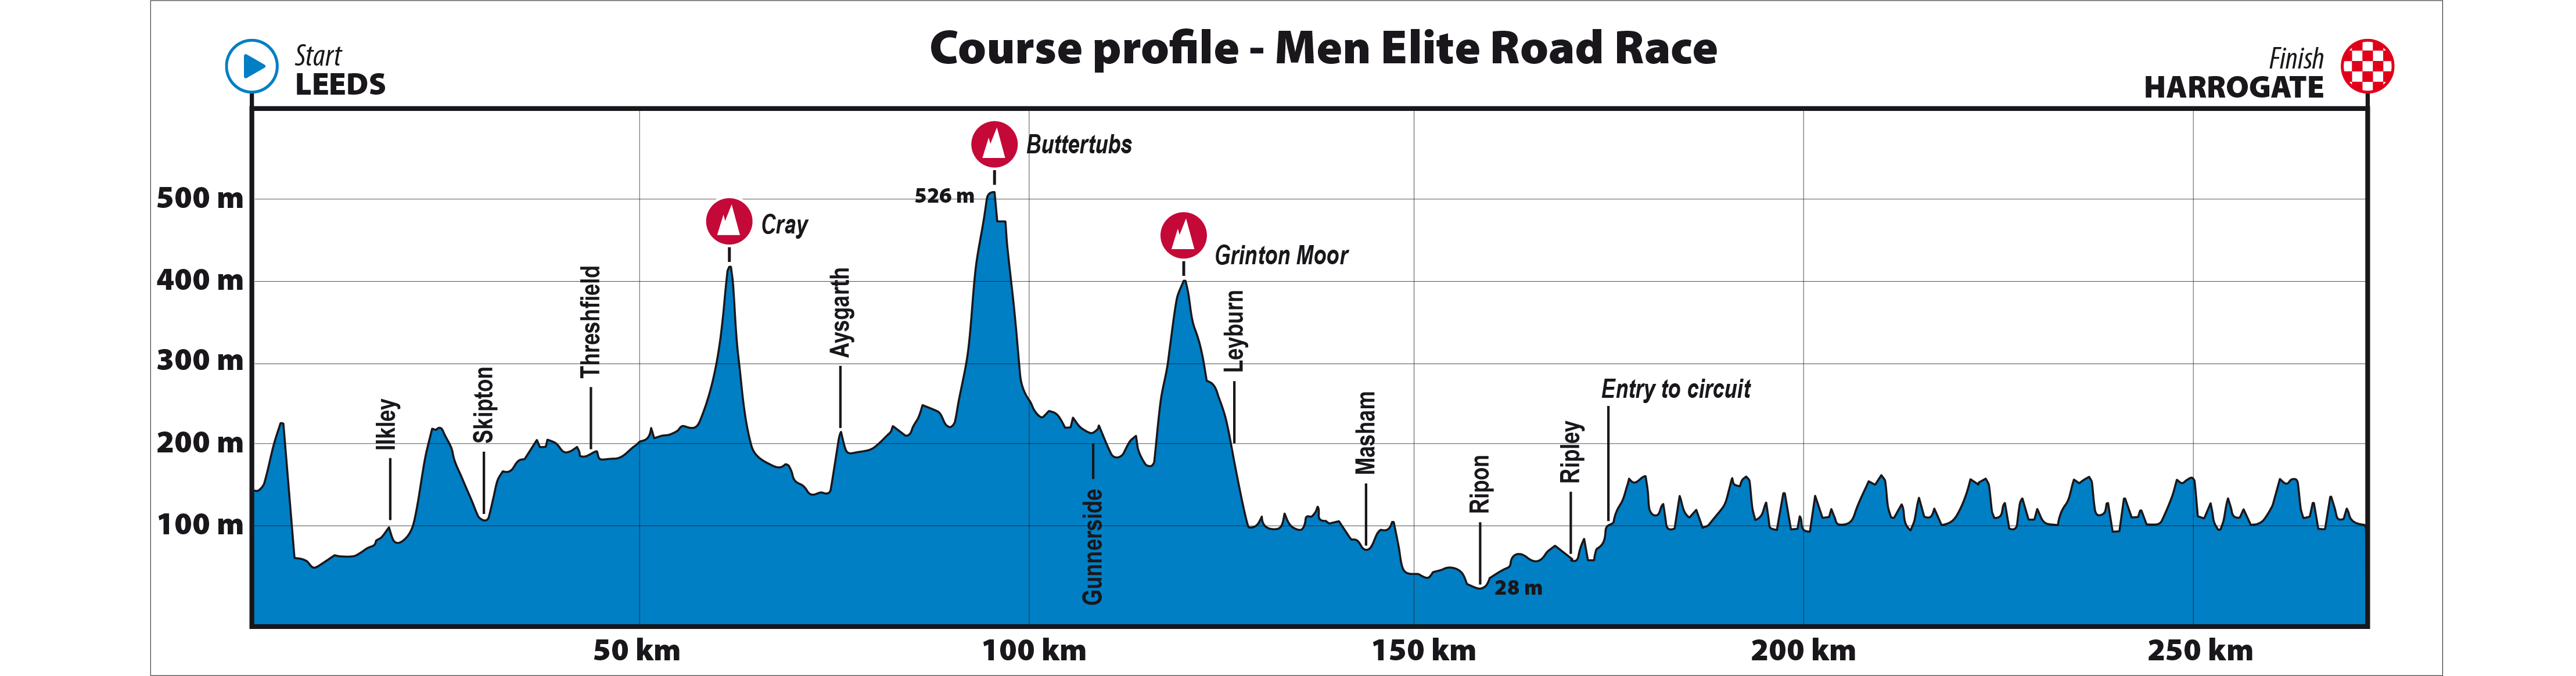 Profile of elite men's road race, UCI 2019